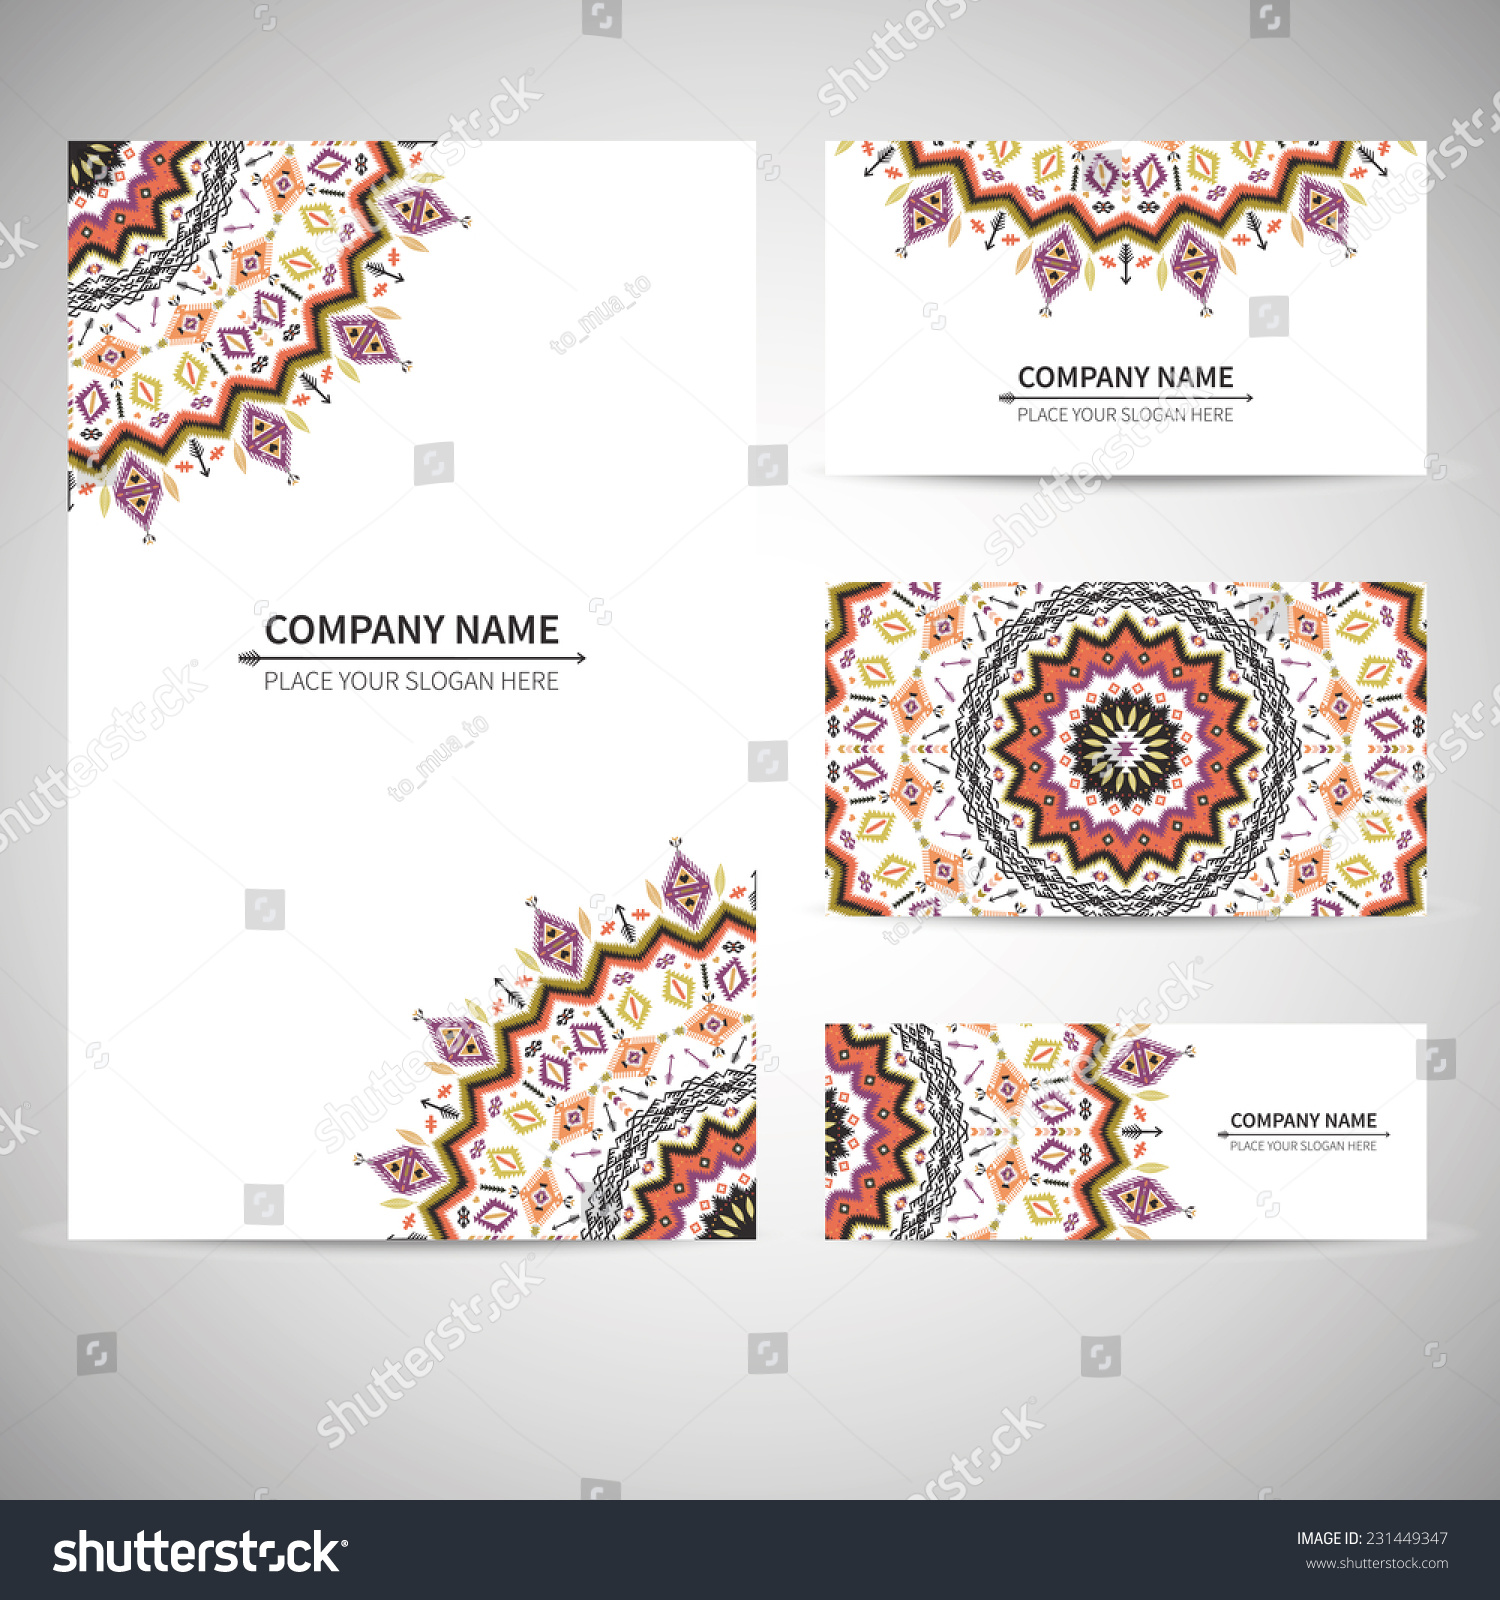 business card native background stock vector shutterstock